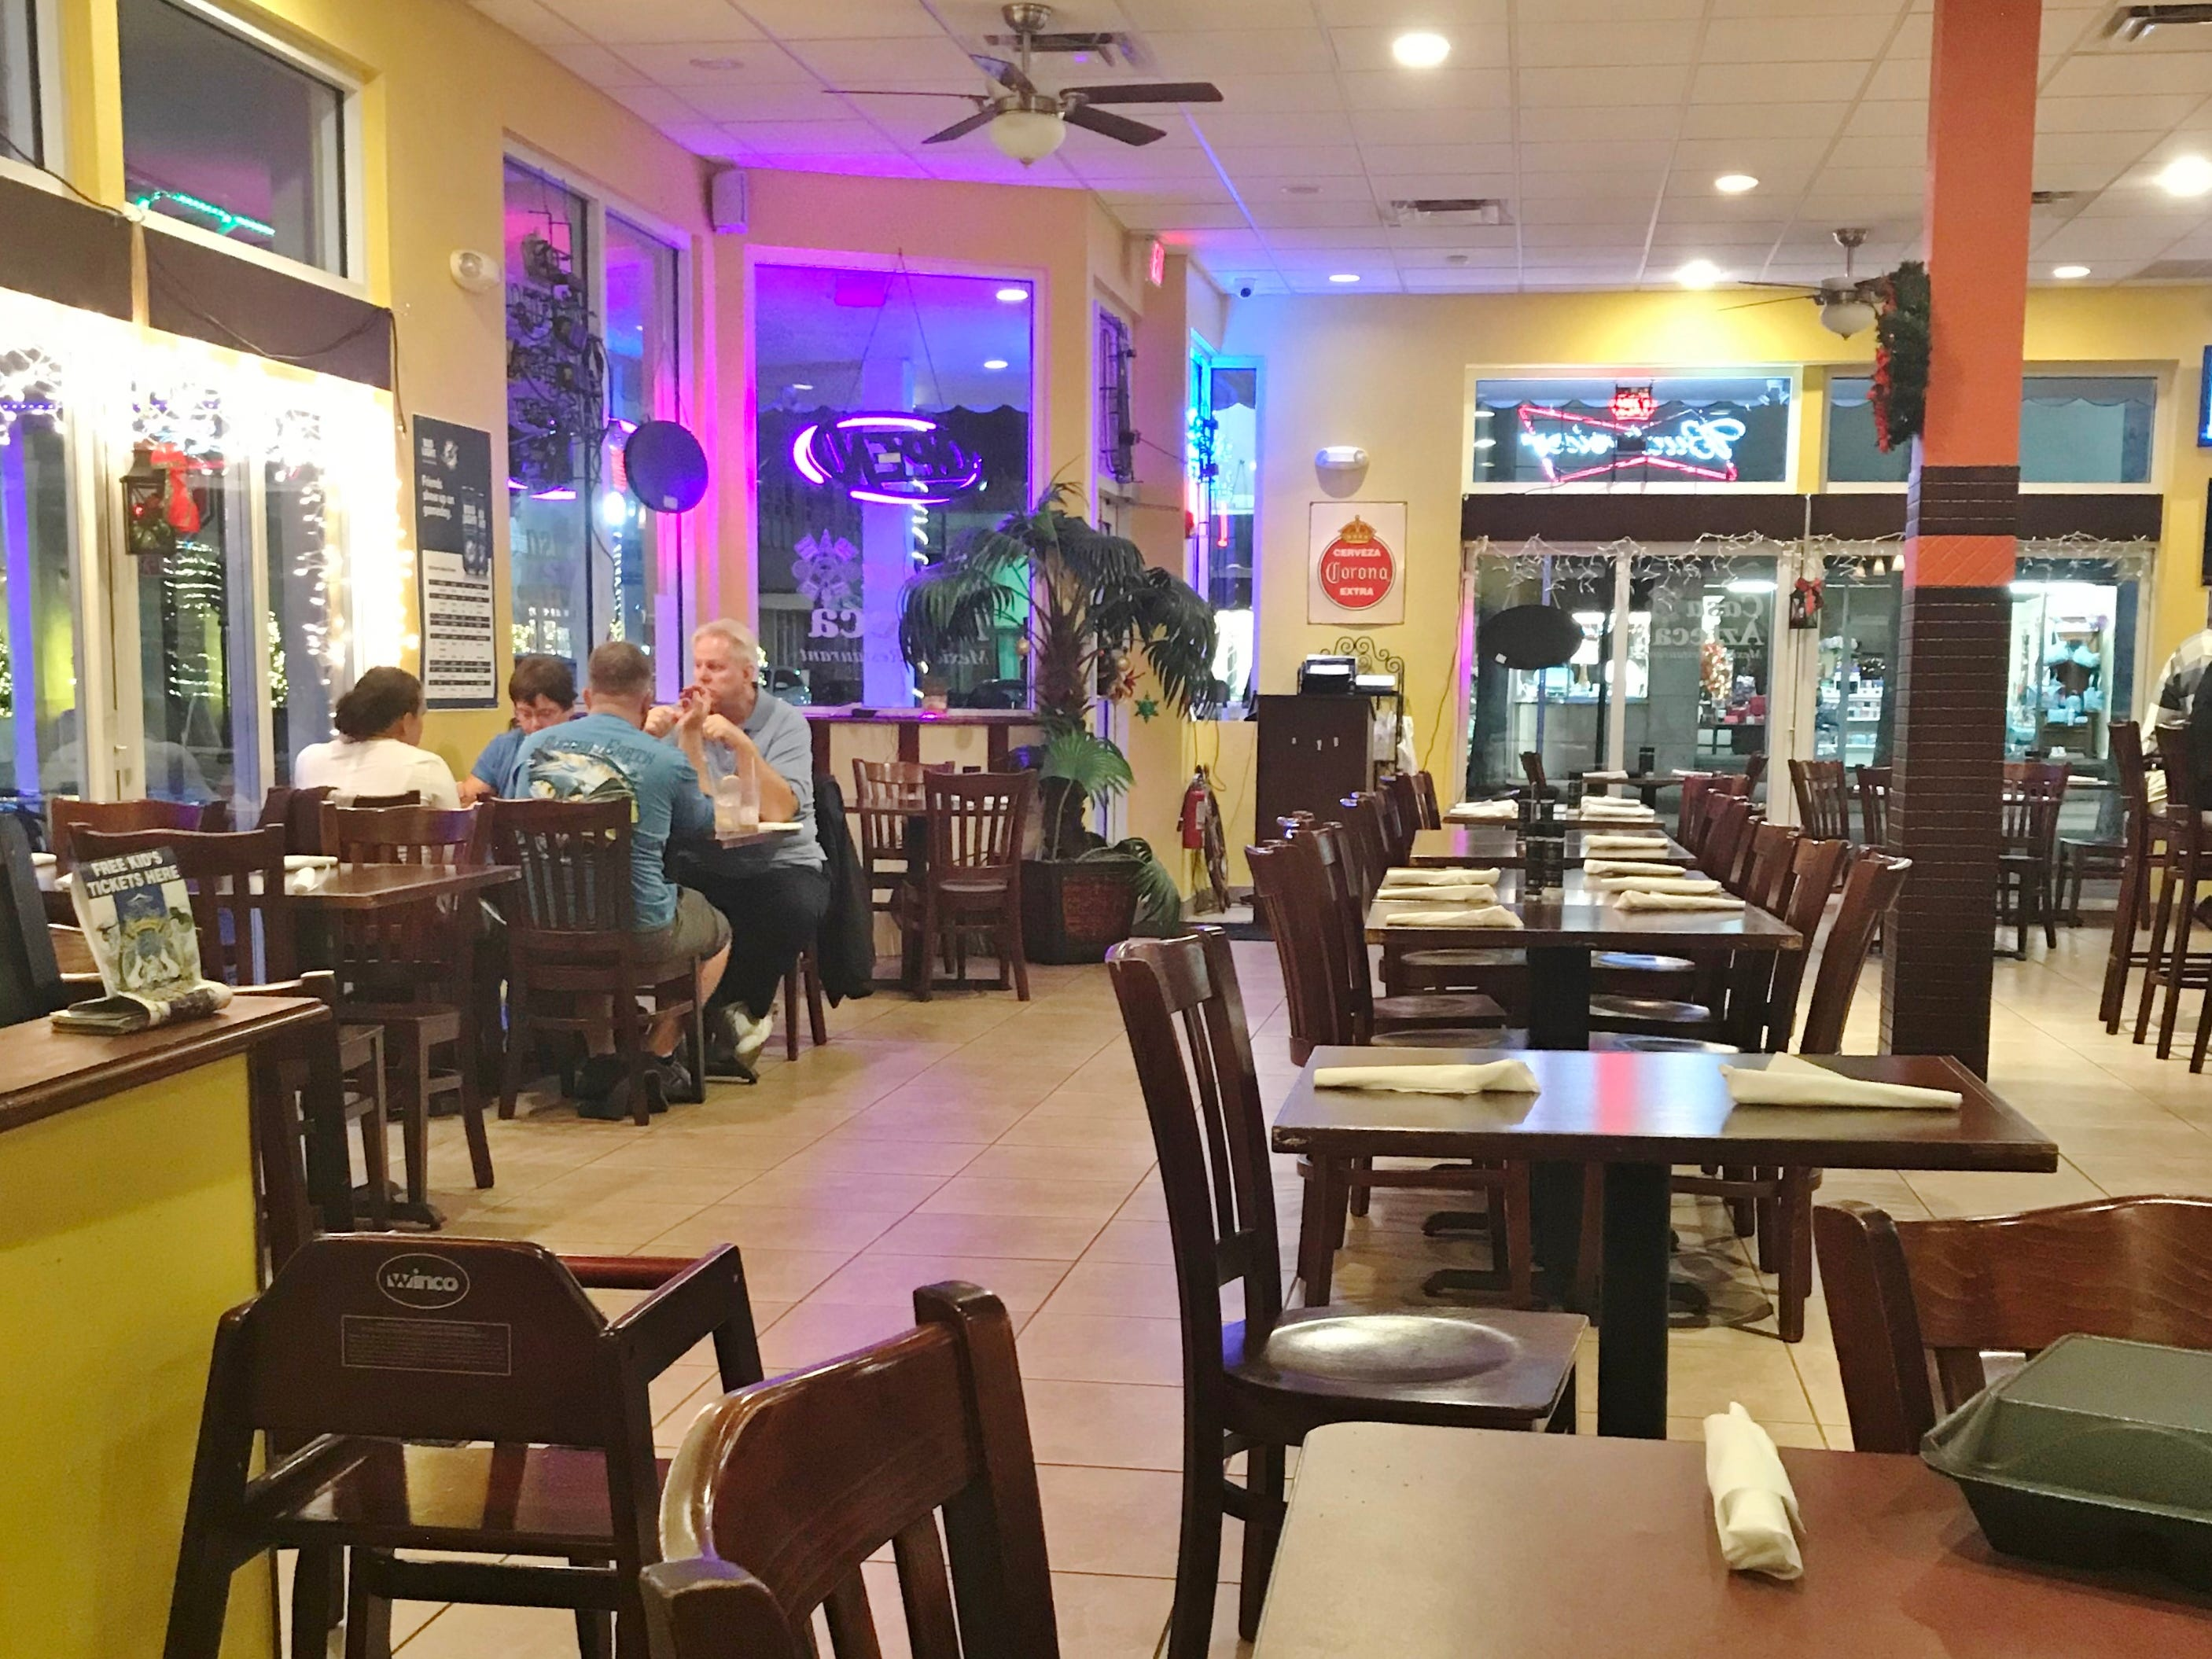 Another view of Casa Azteca's dining room.